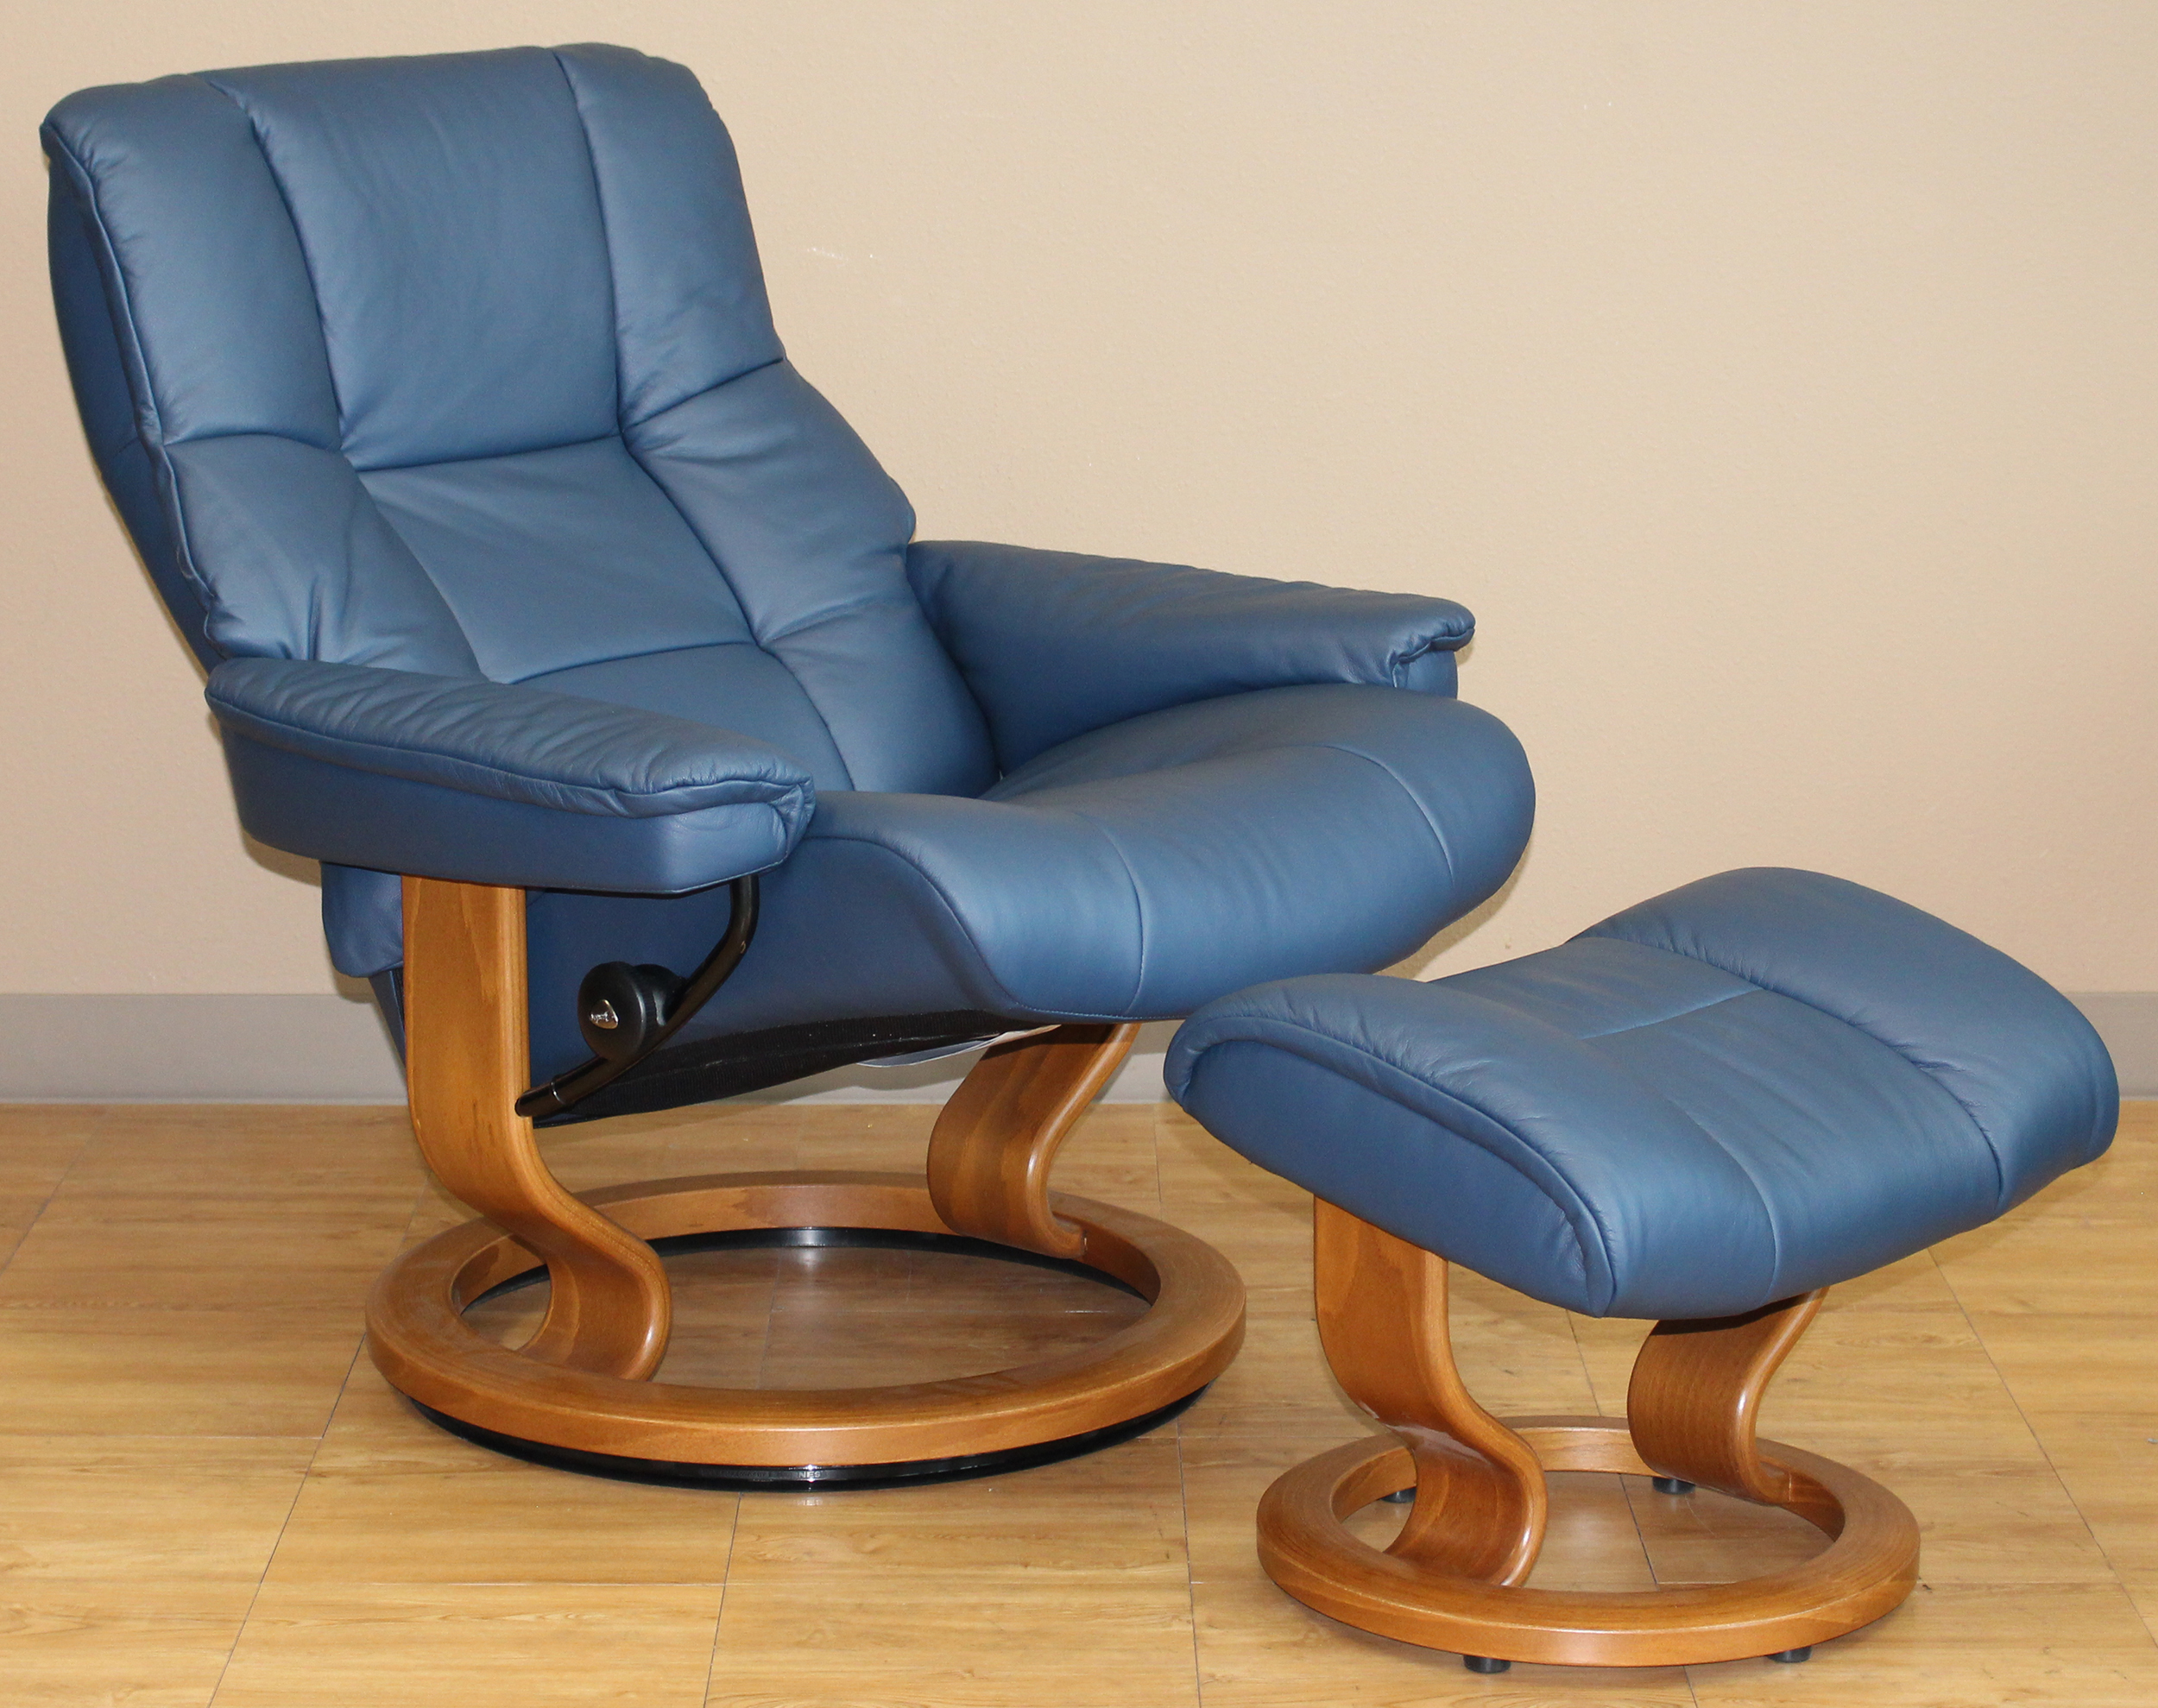 leather recliner chairs office bungee chair stressless kensington large mayfair paloma oxford blue